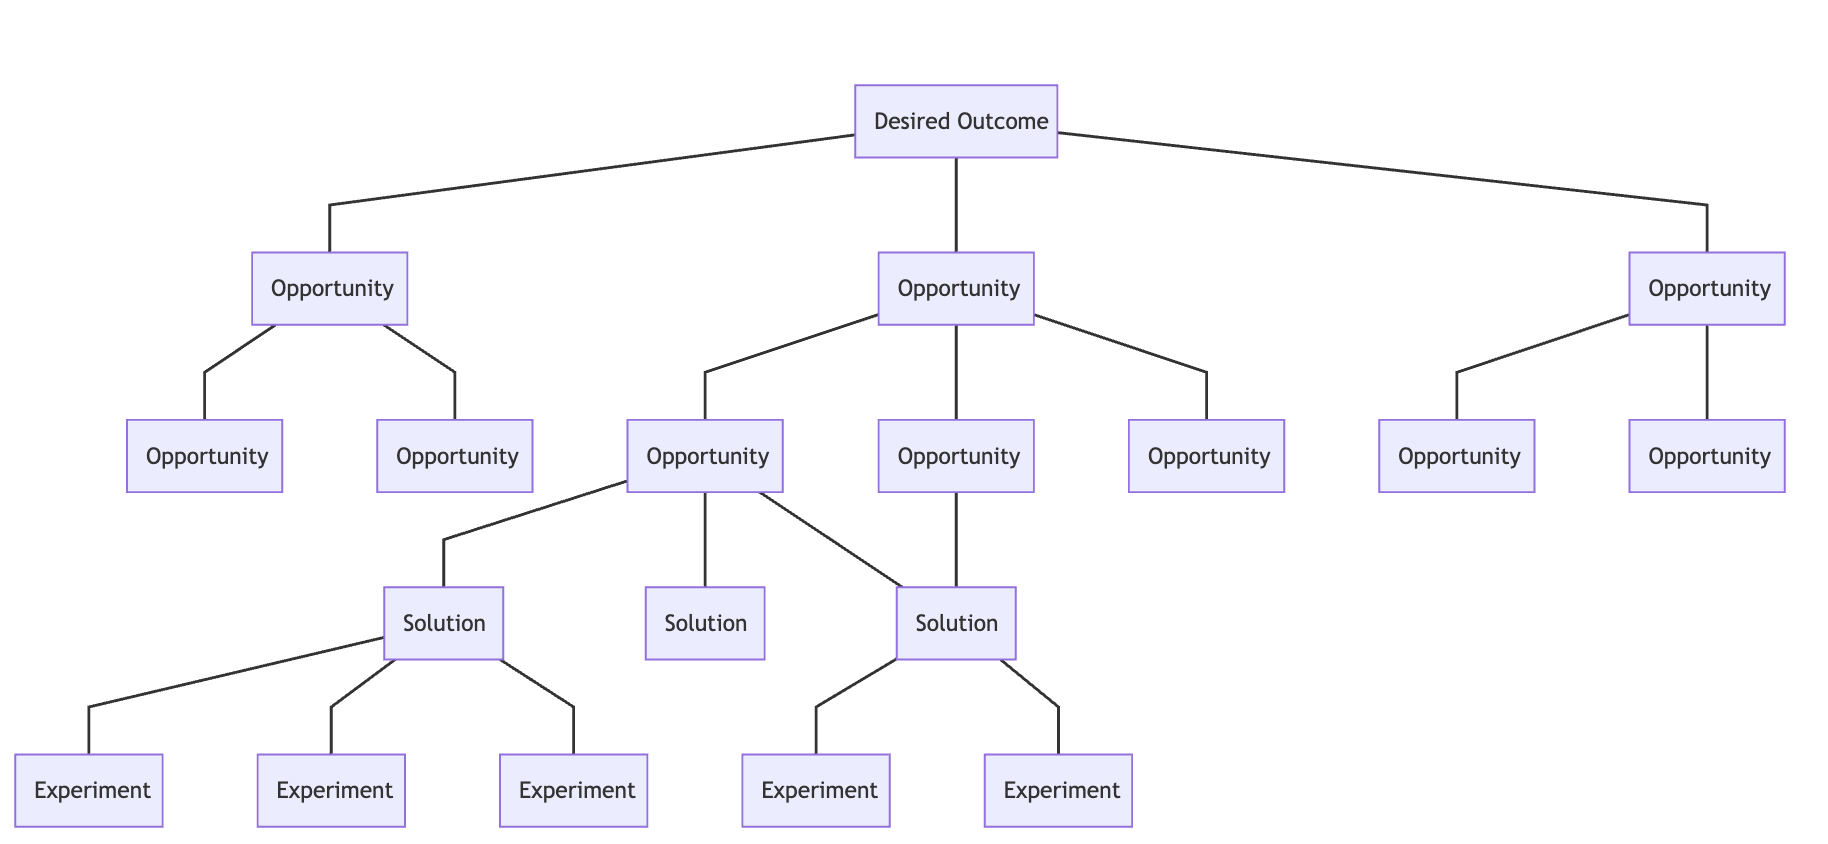 Acme's Opportunity Tree